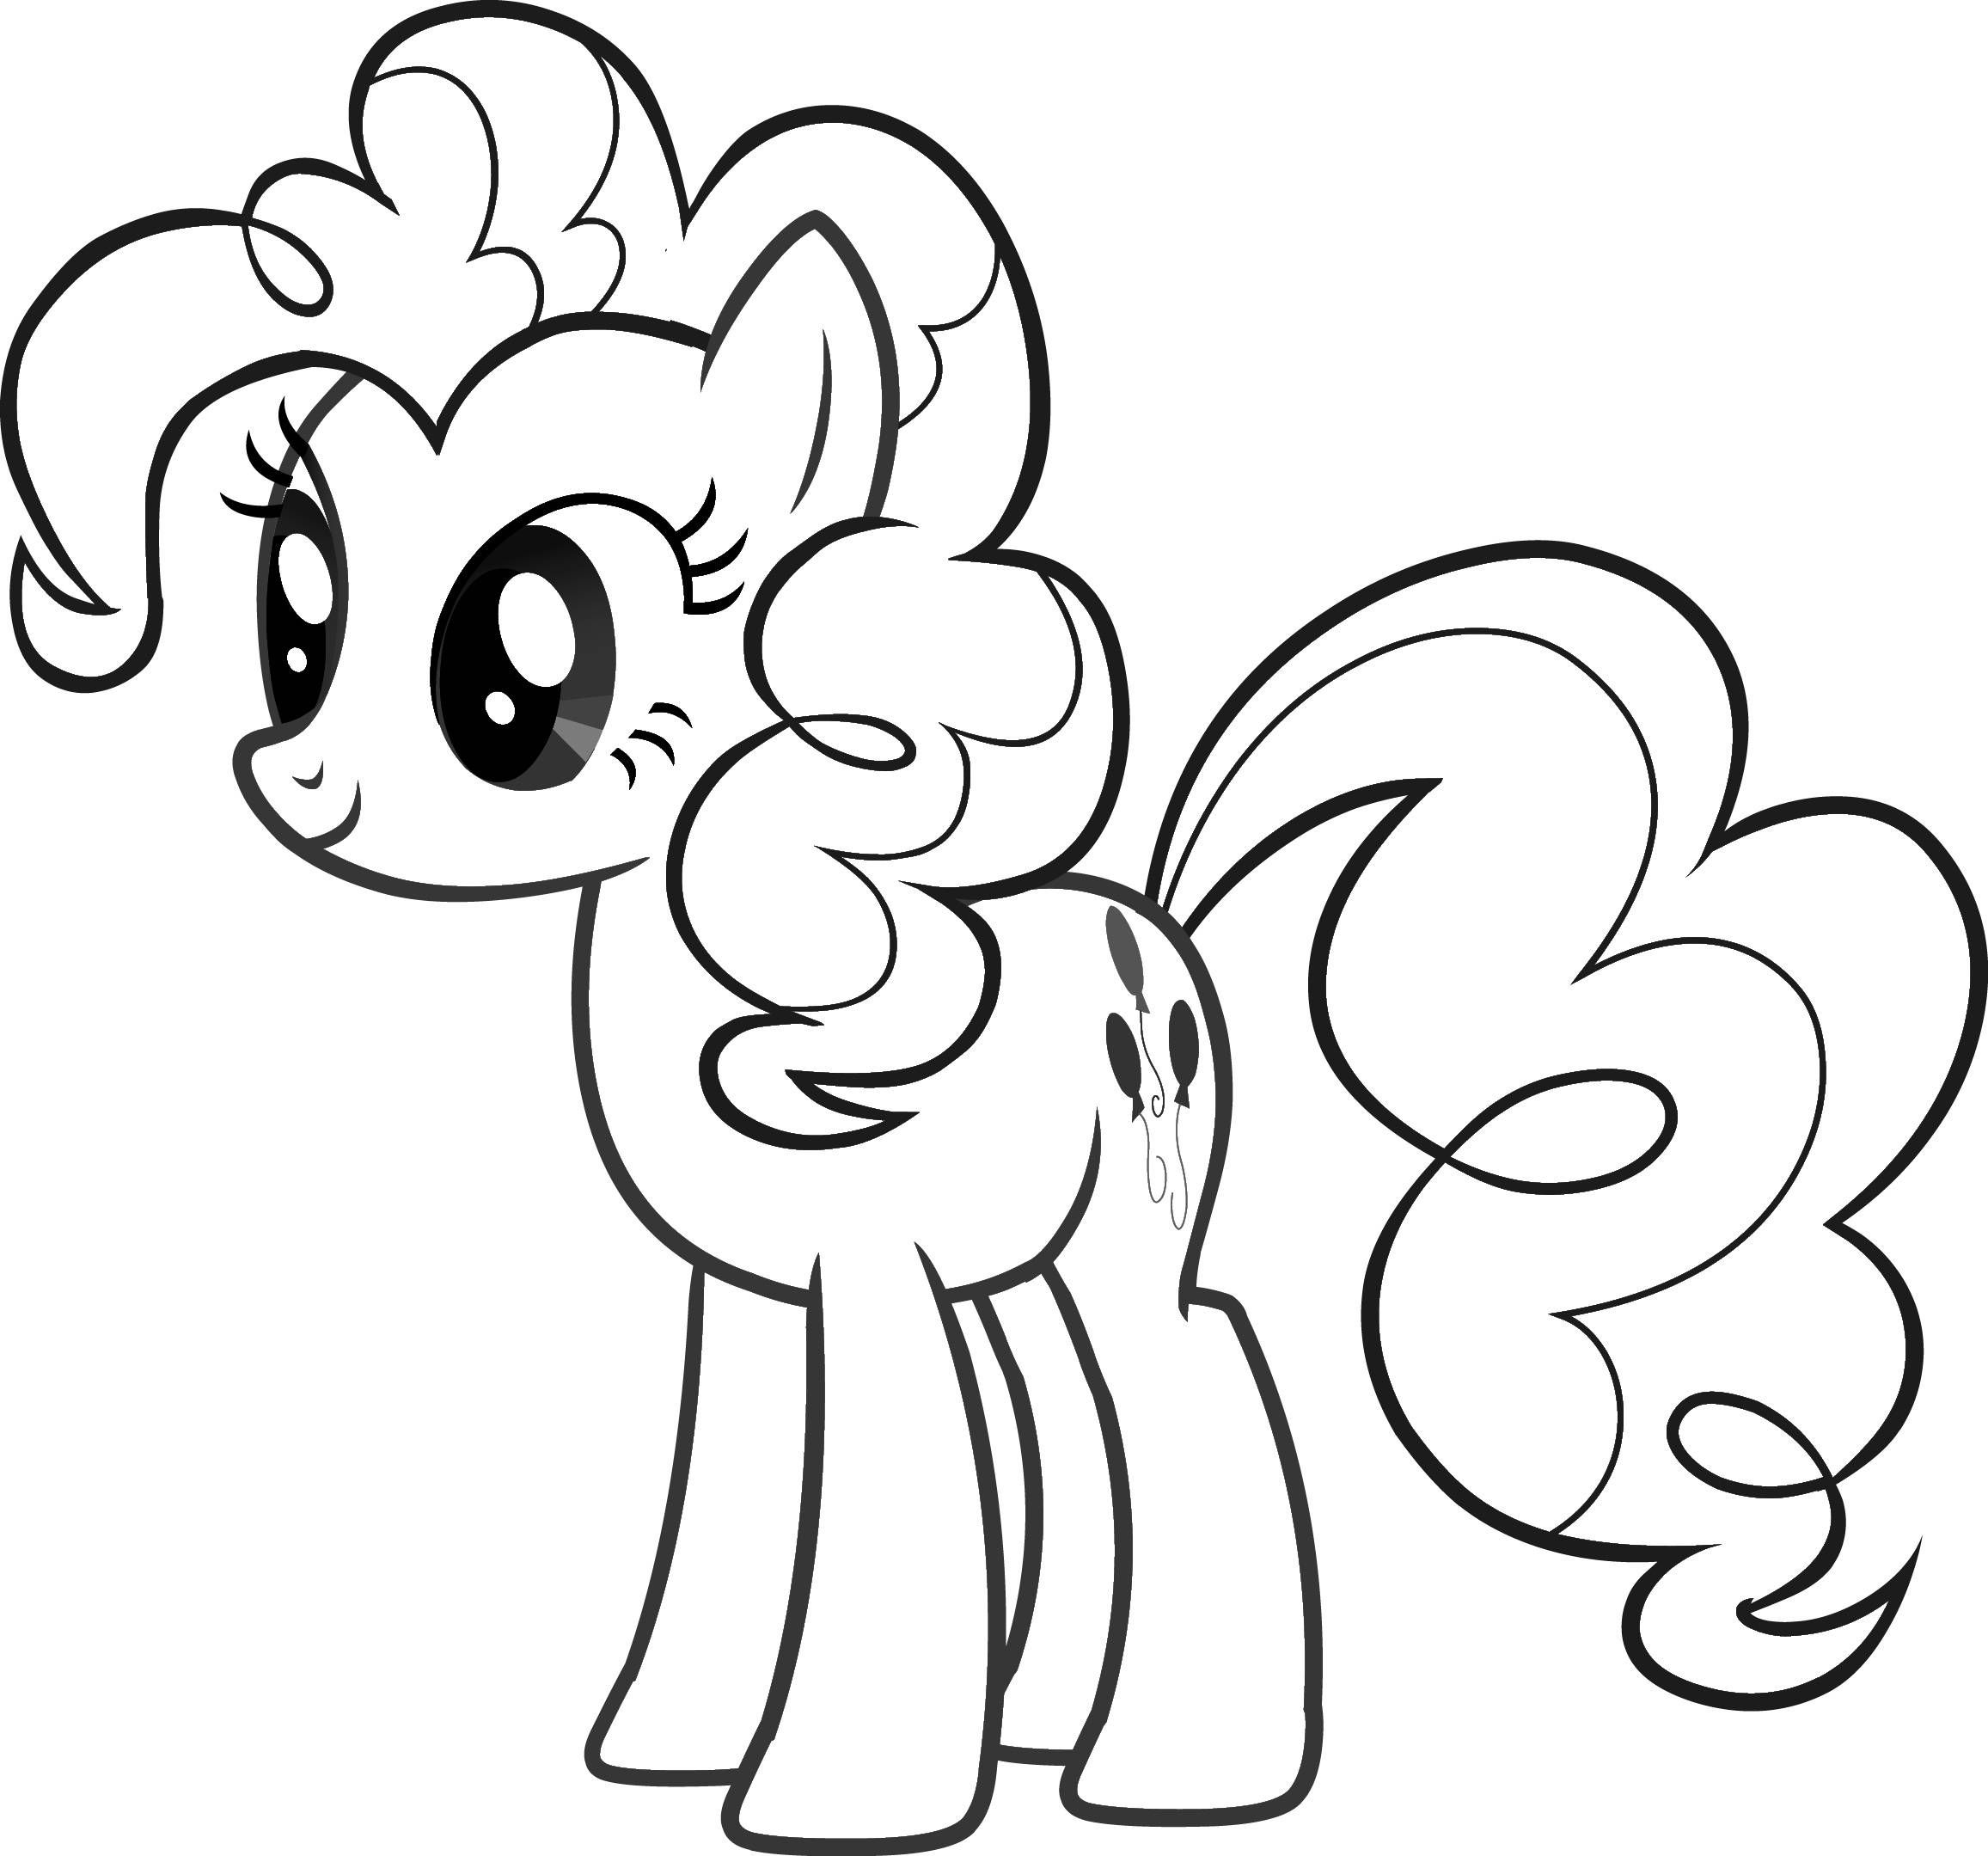 Vintage my little pony coloring pages - My Little Pony Coloring Pages